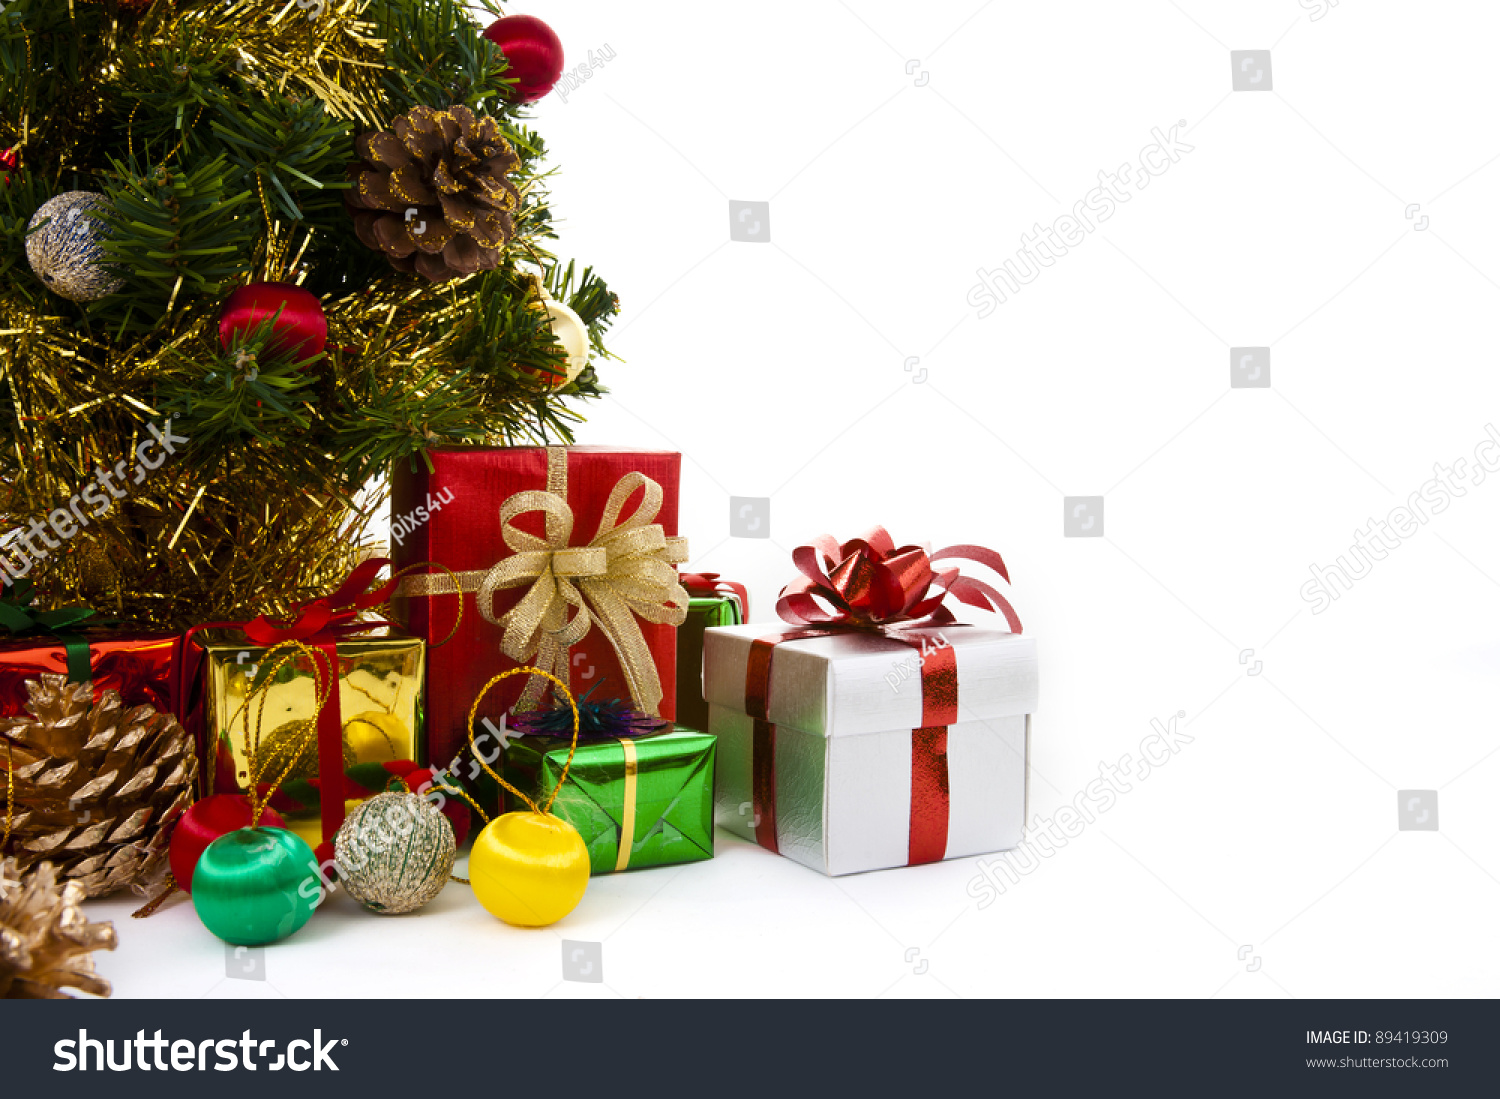 Colorful christmas decorations on white background stock for Colorful christmas decoration ideas